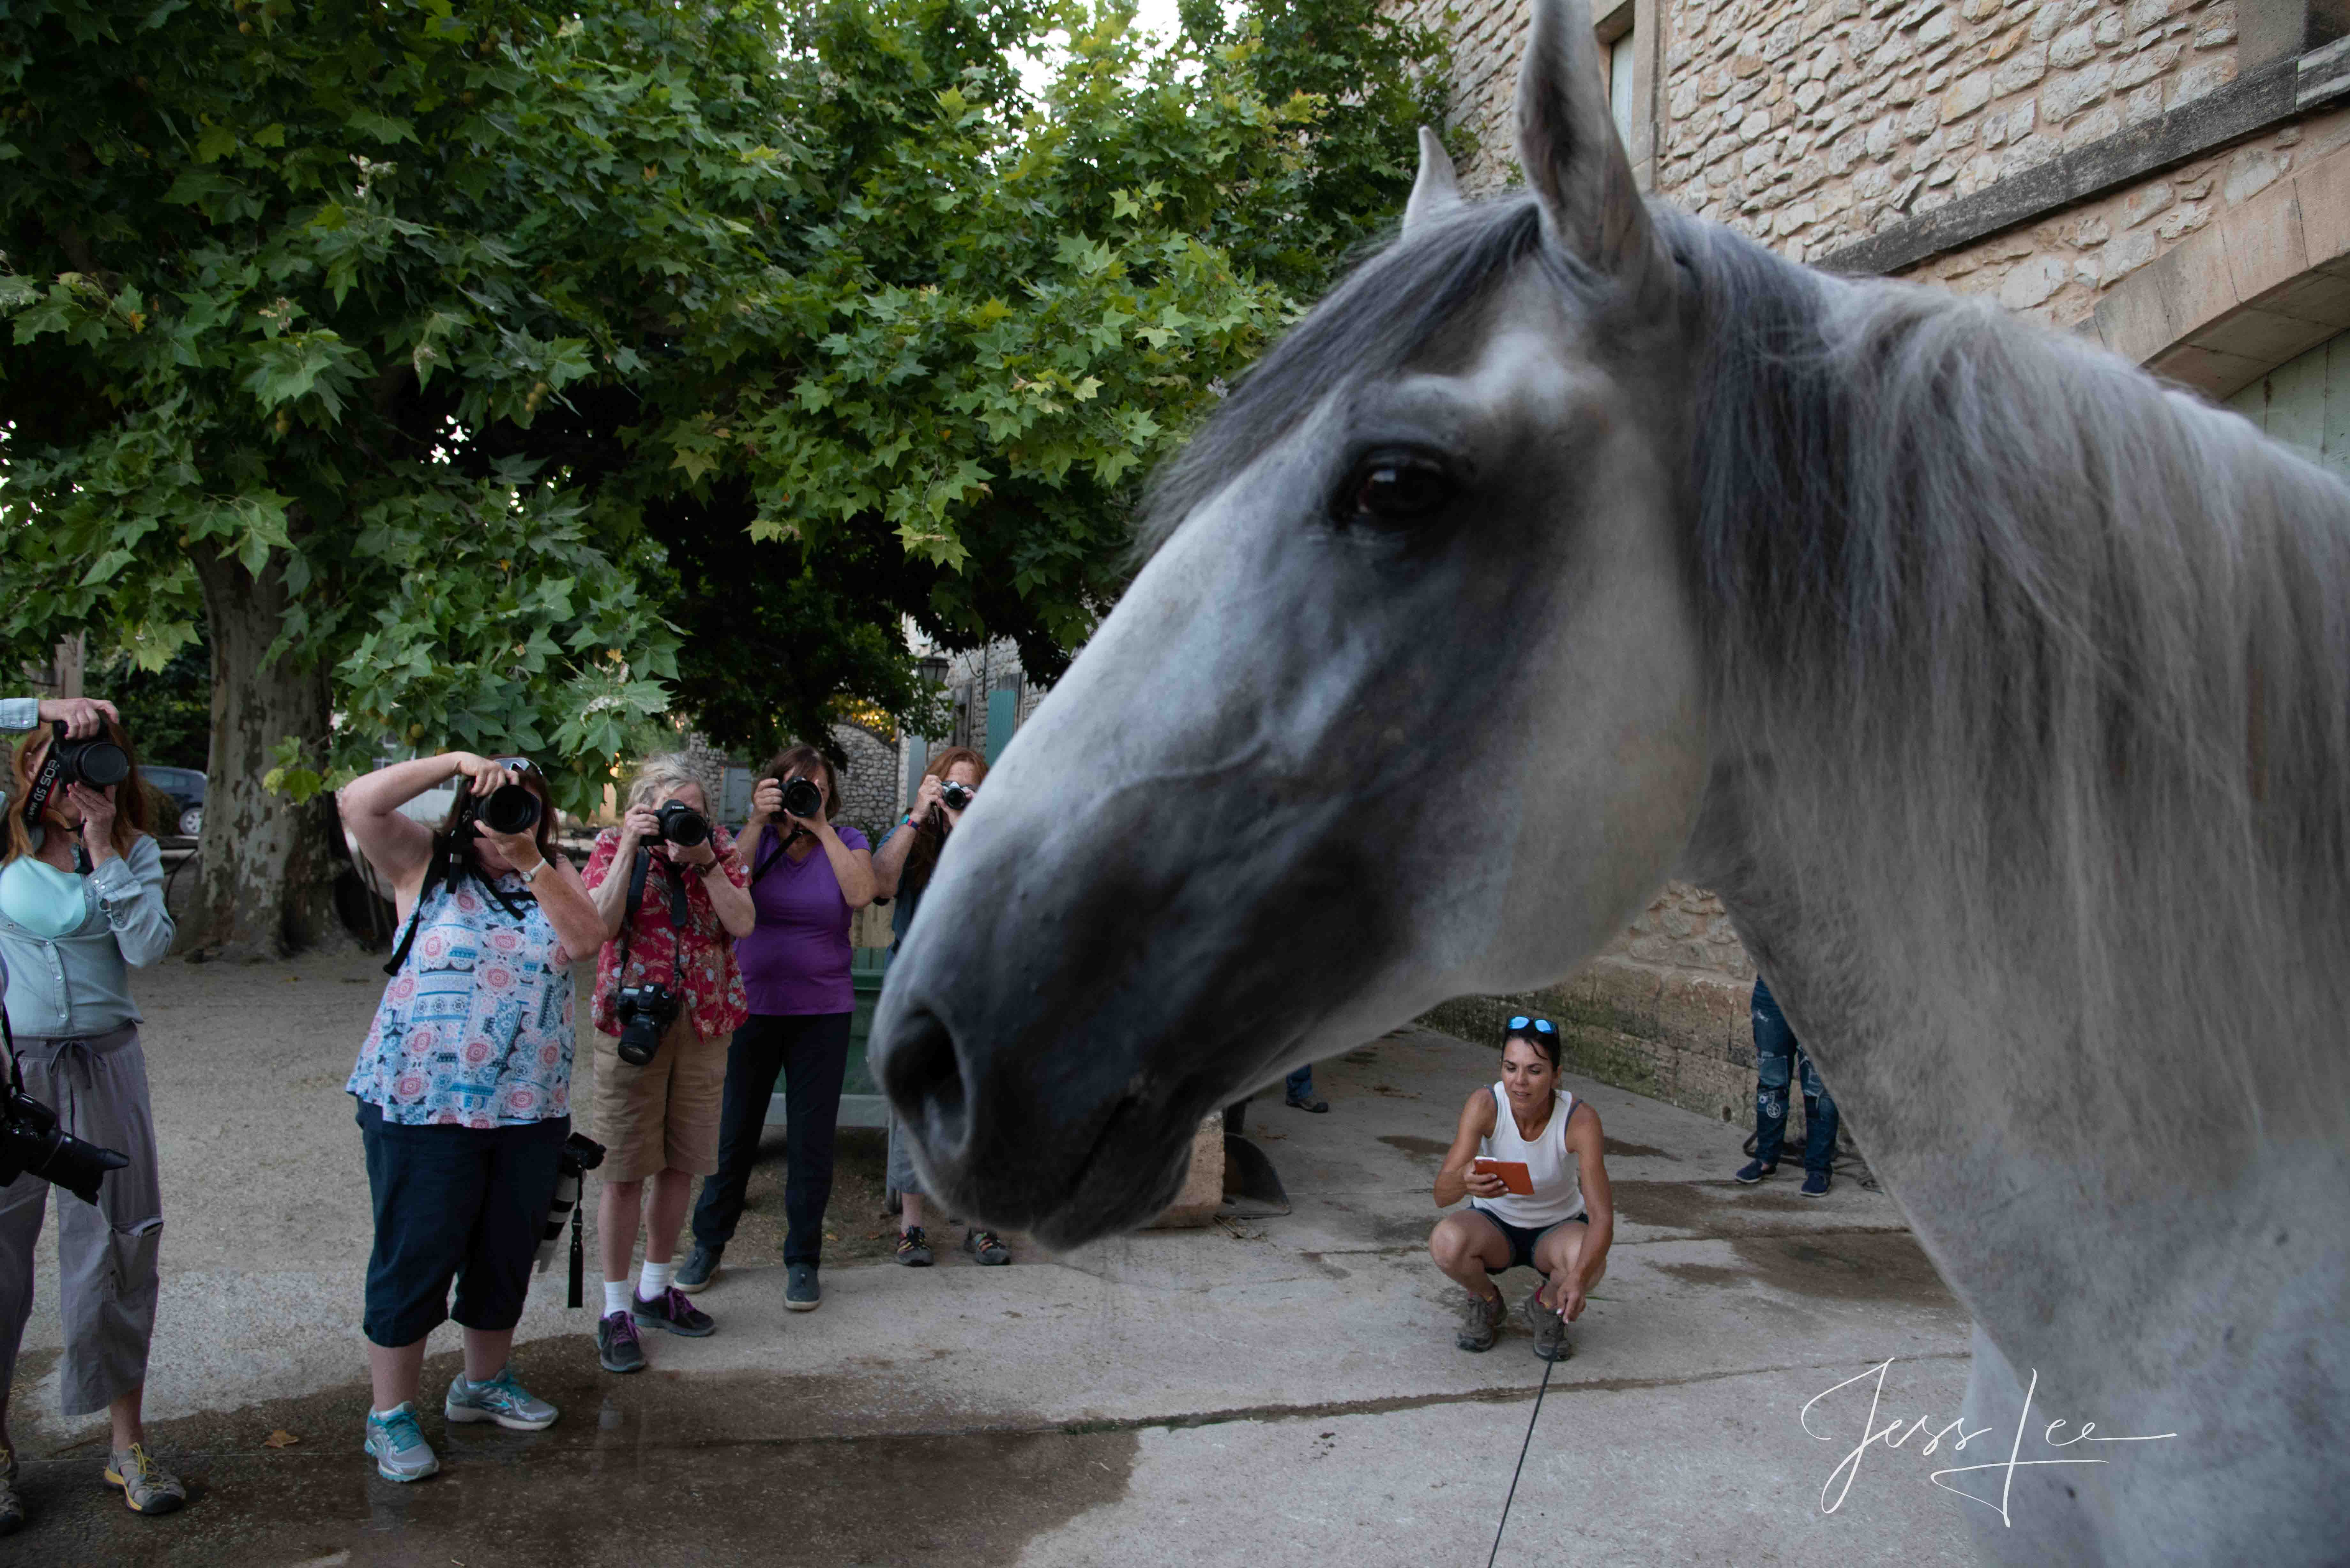 Fine Art, Limited Edition, Luxurious photographic prints of the horses of the Camargue and Provence region of France. These Fine...